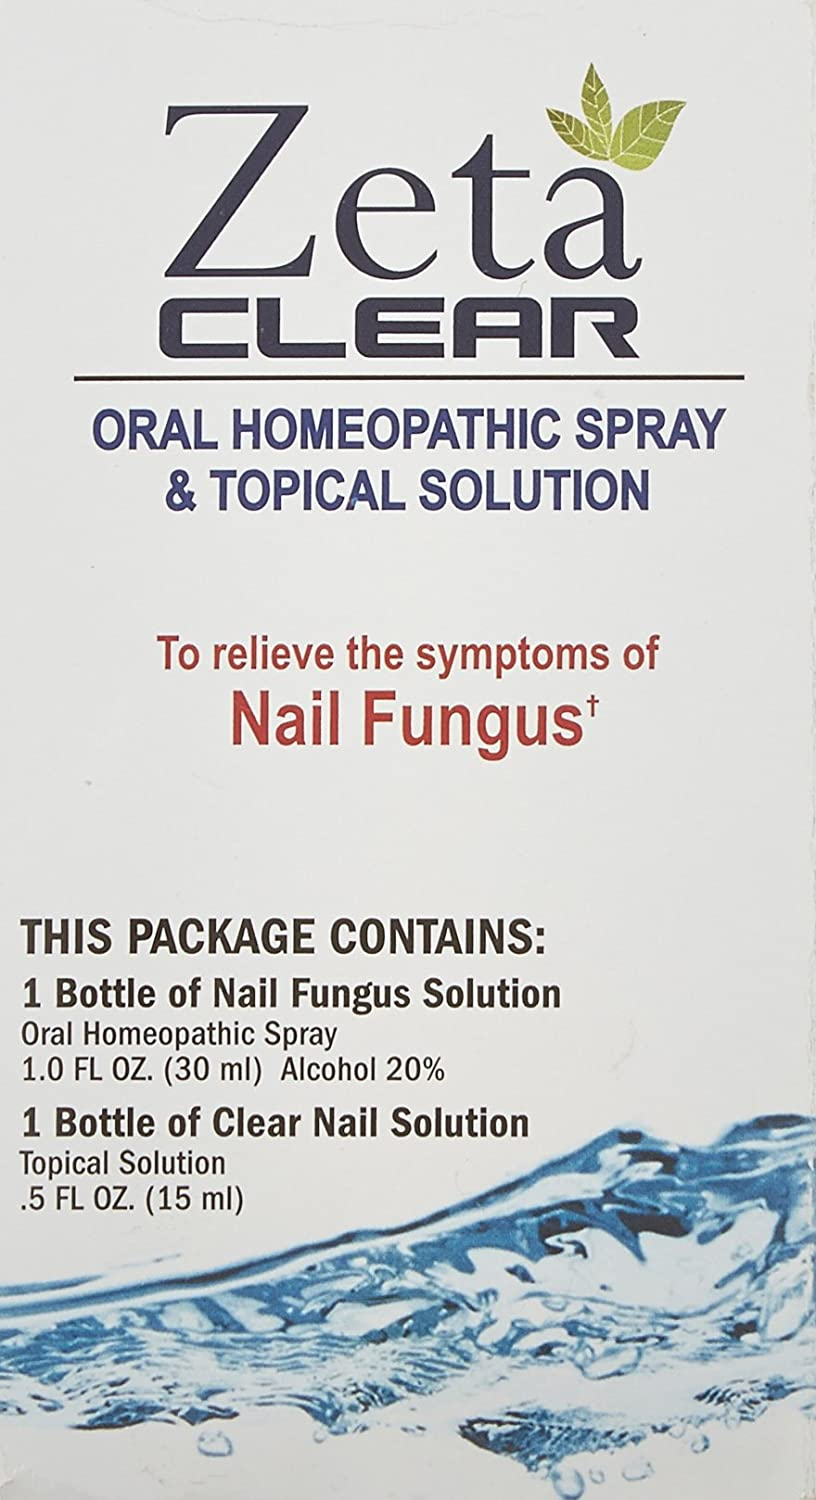 Zetaclear Nail Fungus Treatment Oral Homeopathic Spray And